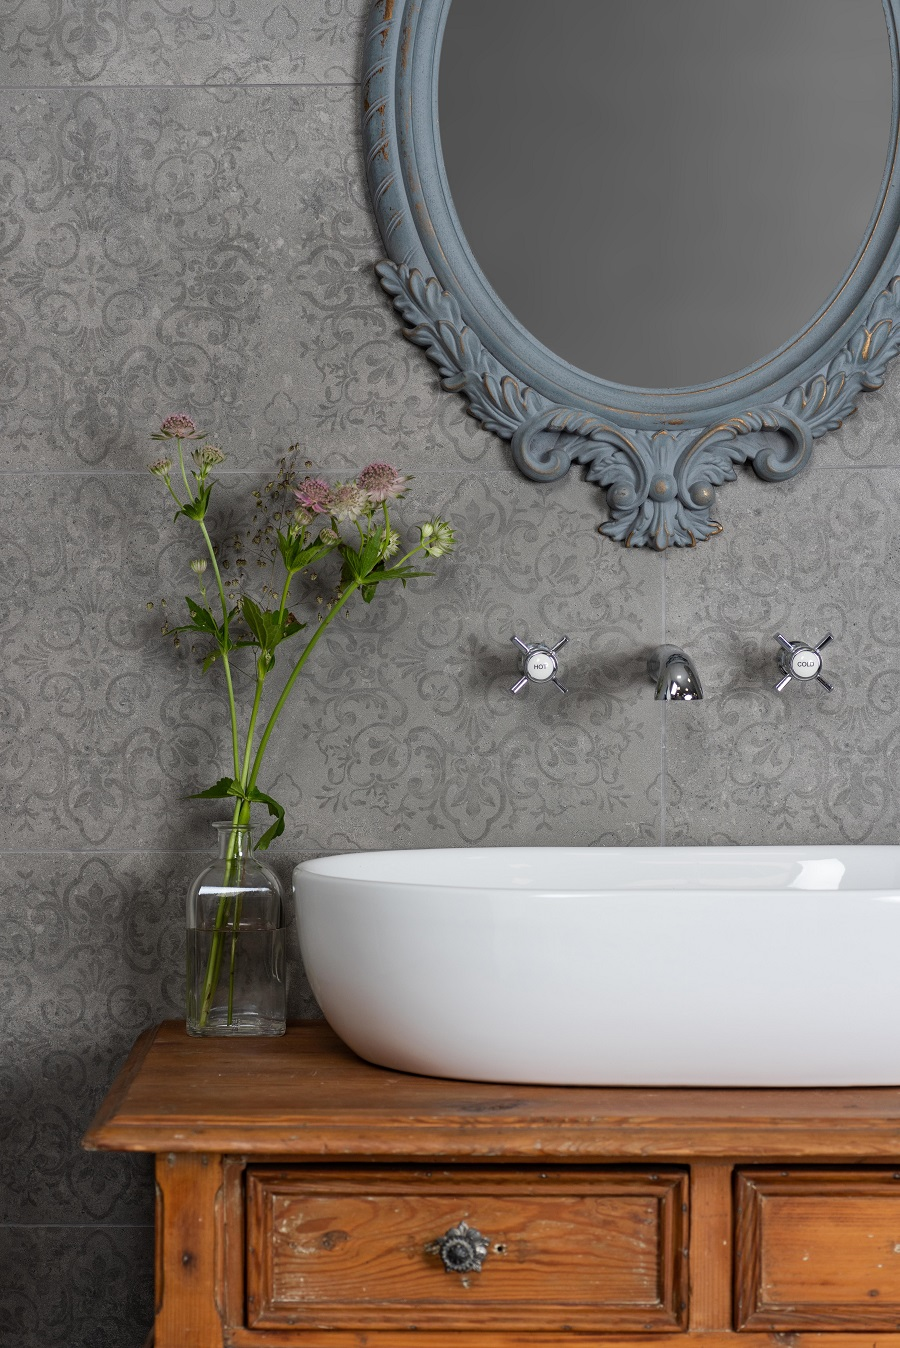 wall tiles that could be wallpaper